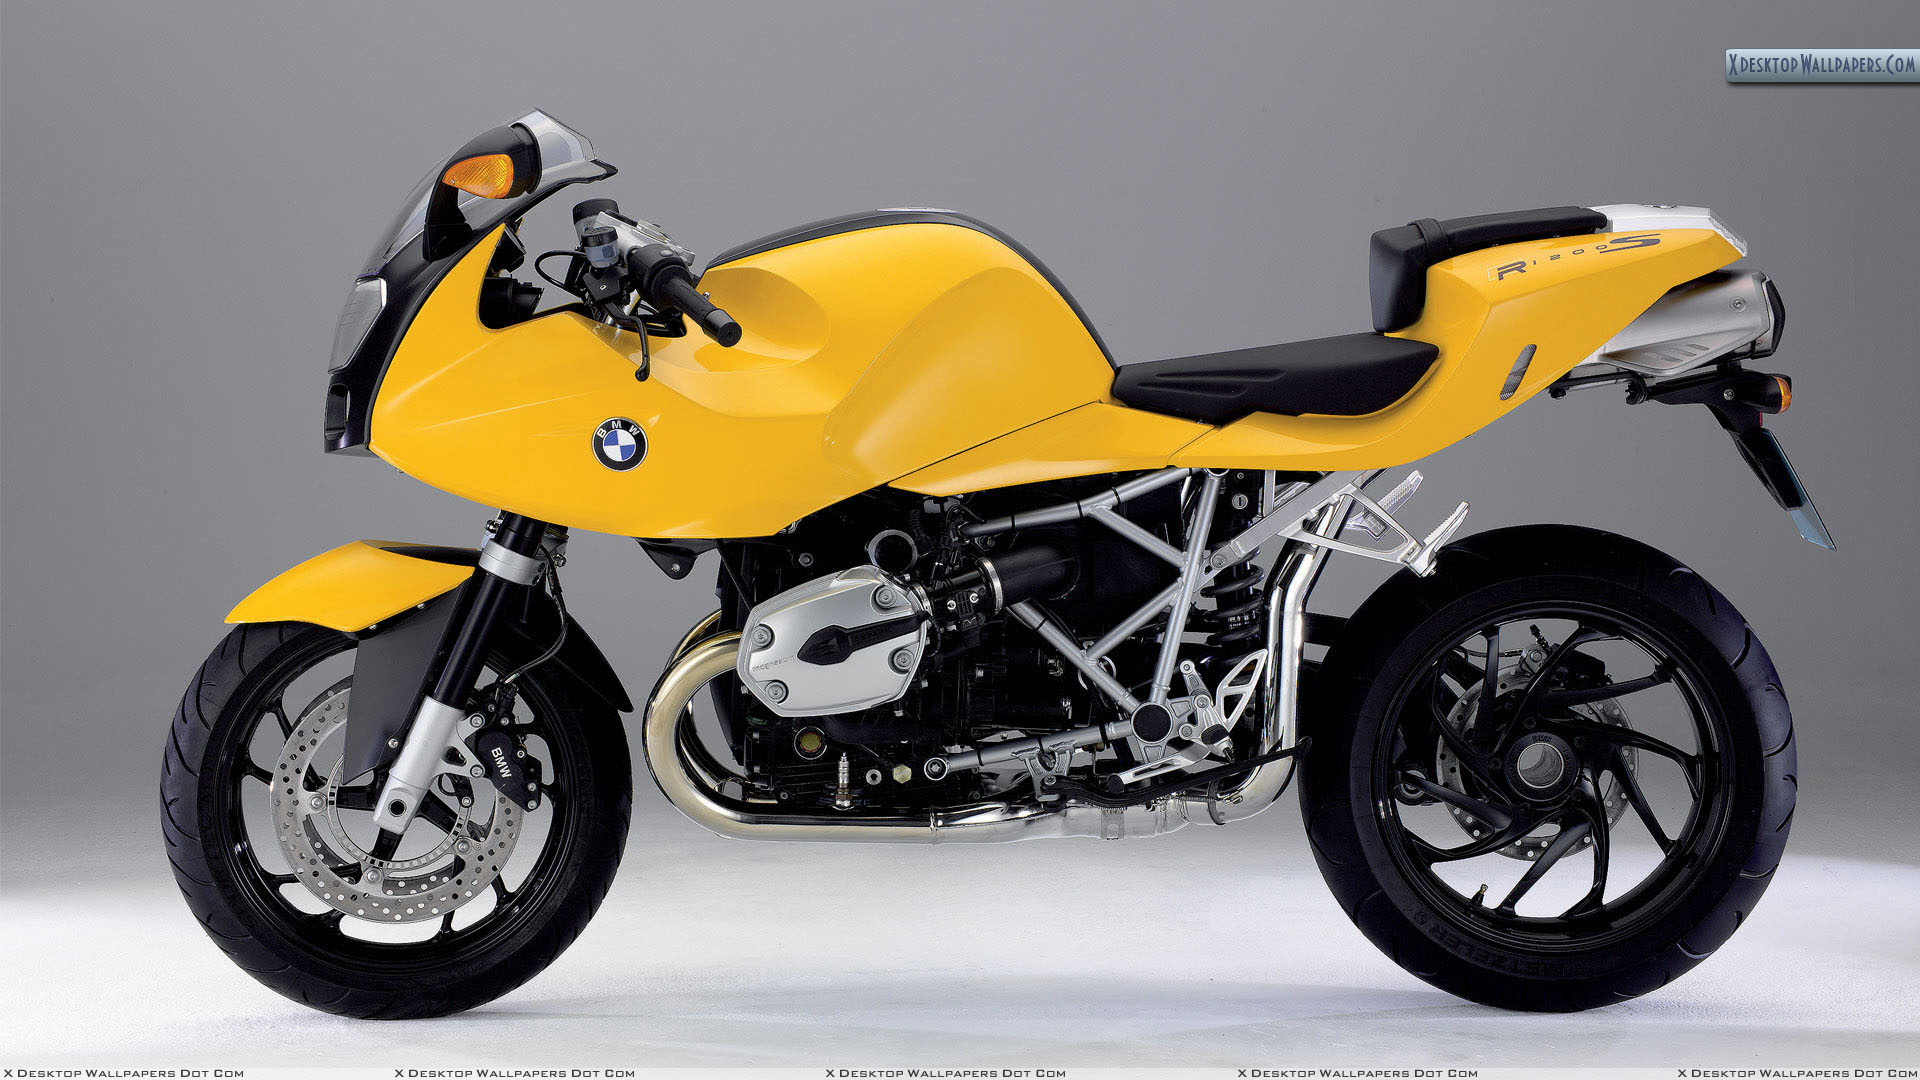 bmw r1200s in yellow color side view wallpaper